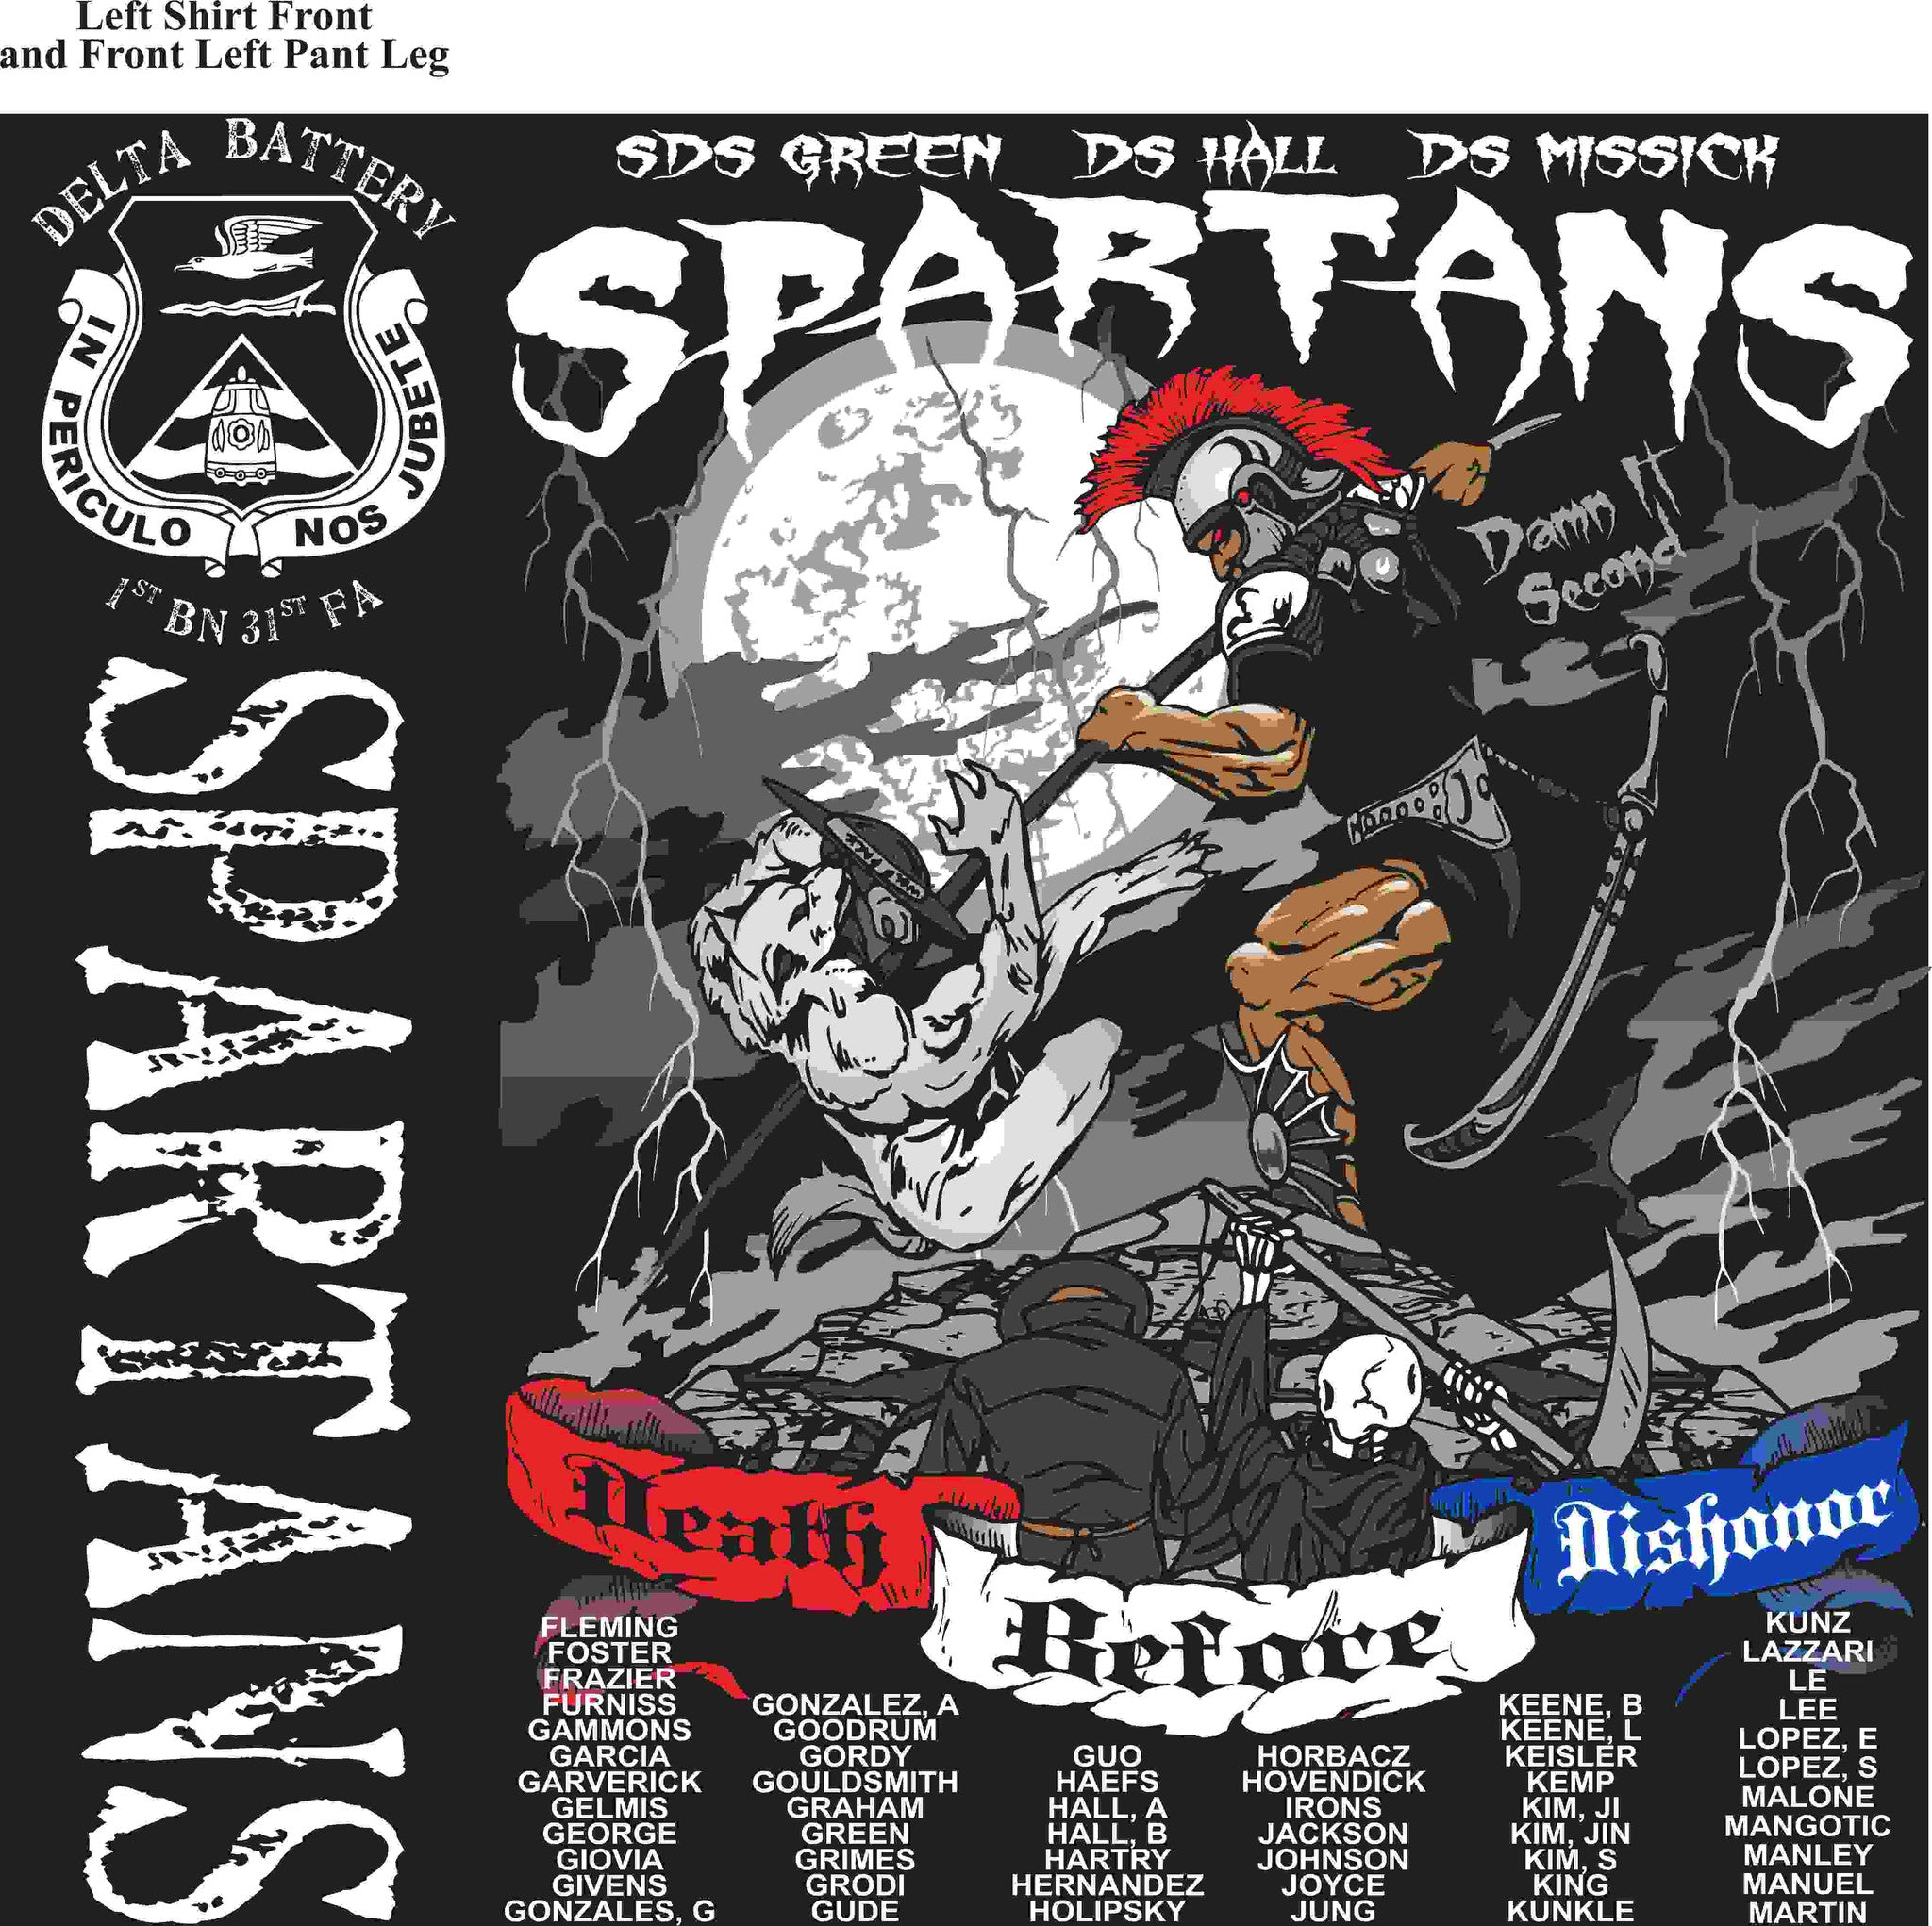 PLATOON SHIRTS (2nd generation print) DELTA 1st 31st SPARTANS MAR 2016